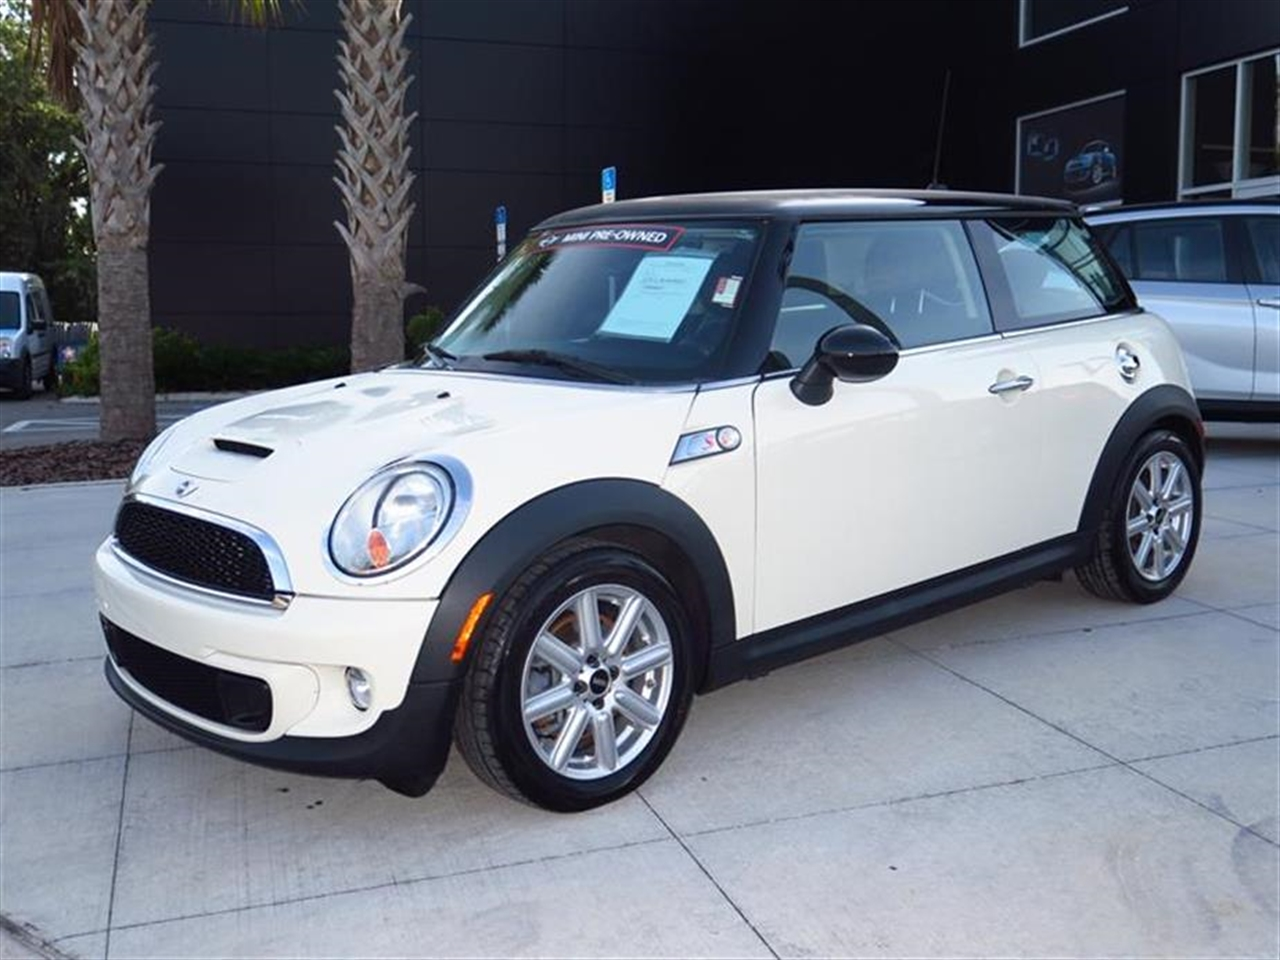 2012 MINI COOPER HARDTOP 2dr Cpe S 73793 miles 1 rear cup holder 12V auxiliary pwr outlet in co